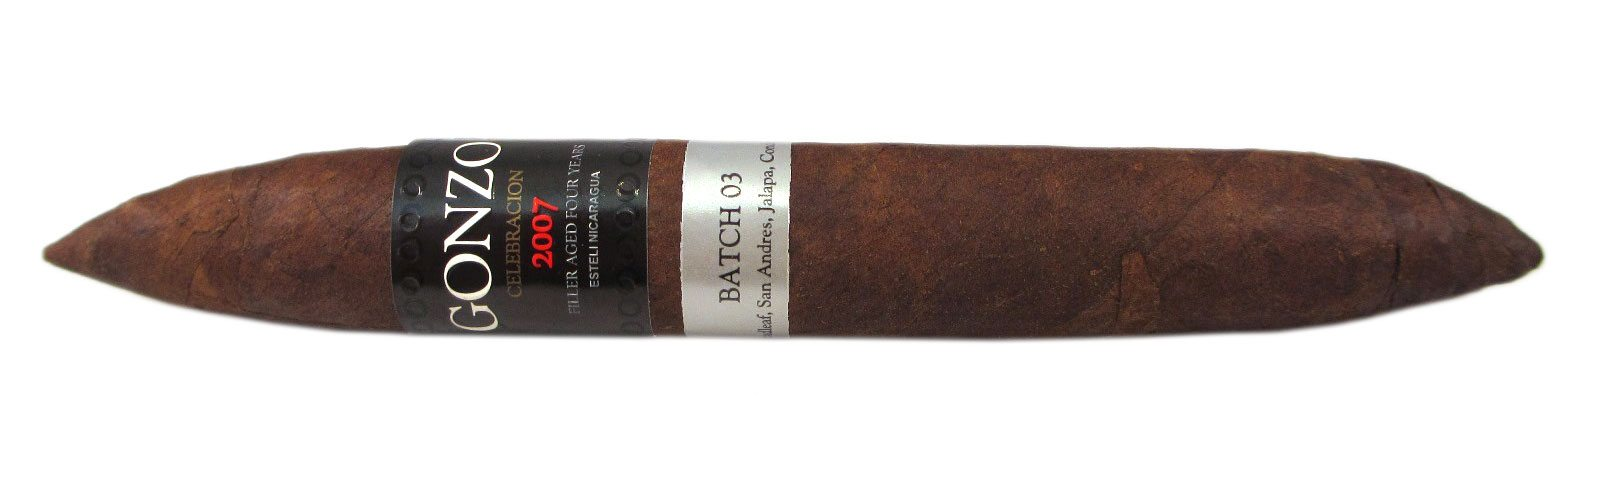 Blind Cigar Review: Epicurian | Gonzo Perfecto